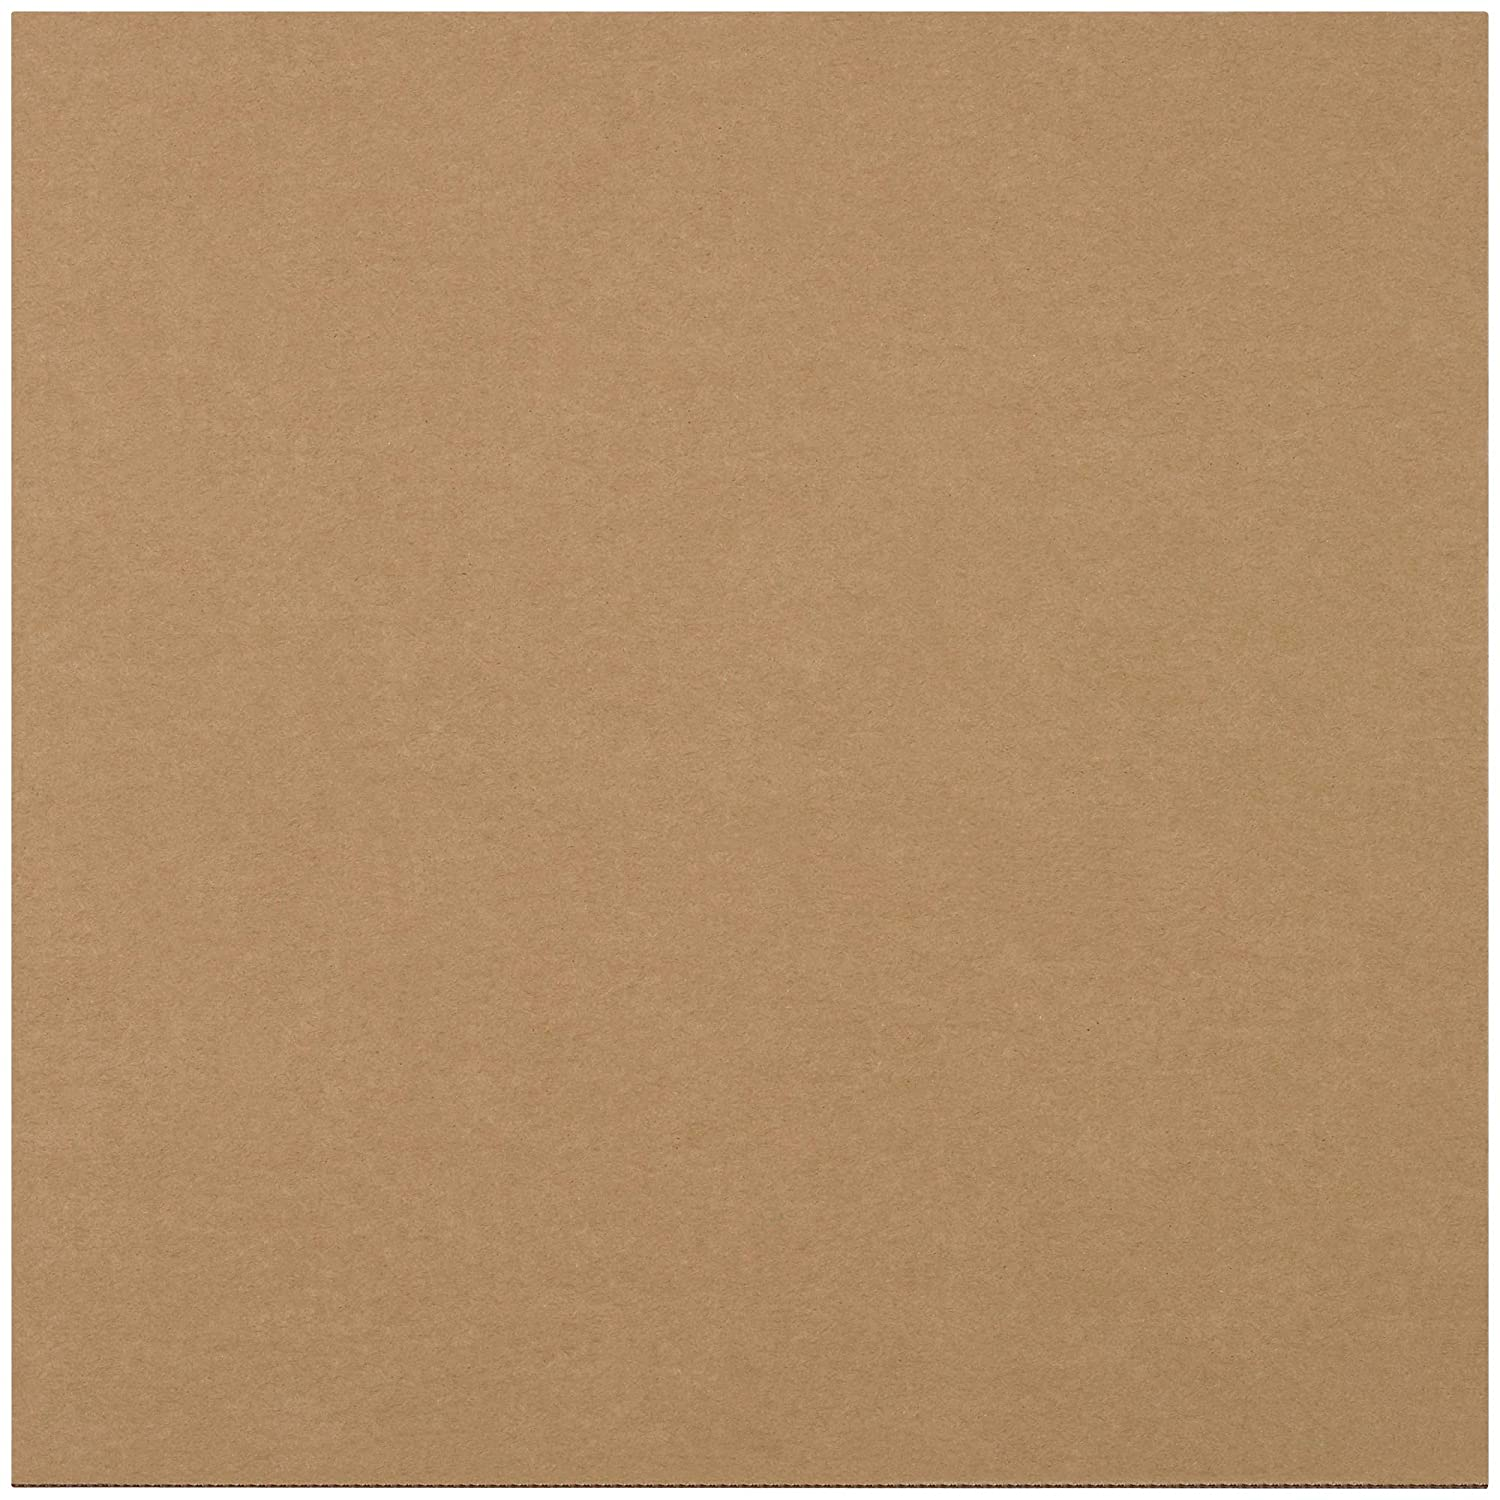 Caja Shipping Corrugated Memphis Mall At the price Layer Pads 17 x 8